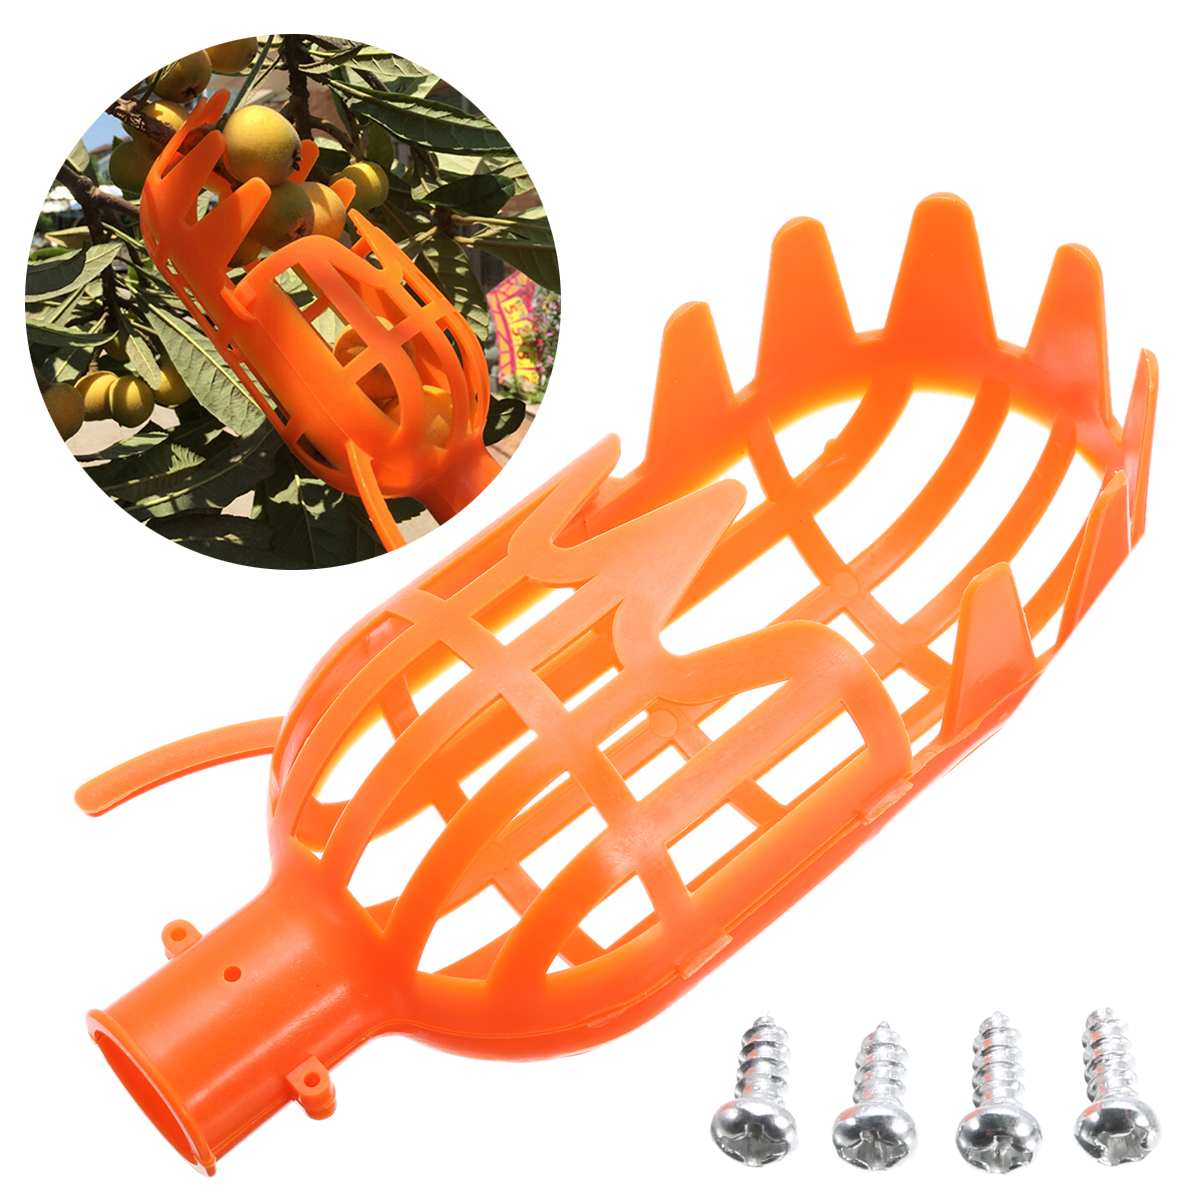 1Pc Plastic Fruit Picker Without Pole Fruit Catcher Collector For Gardening Picking Tool